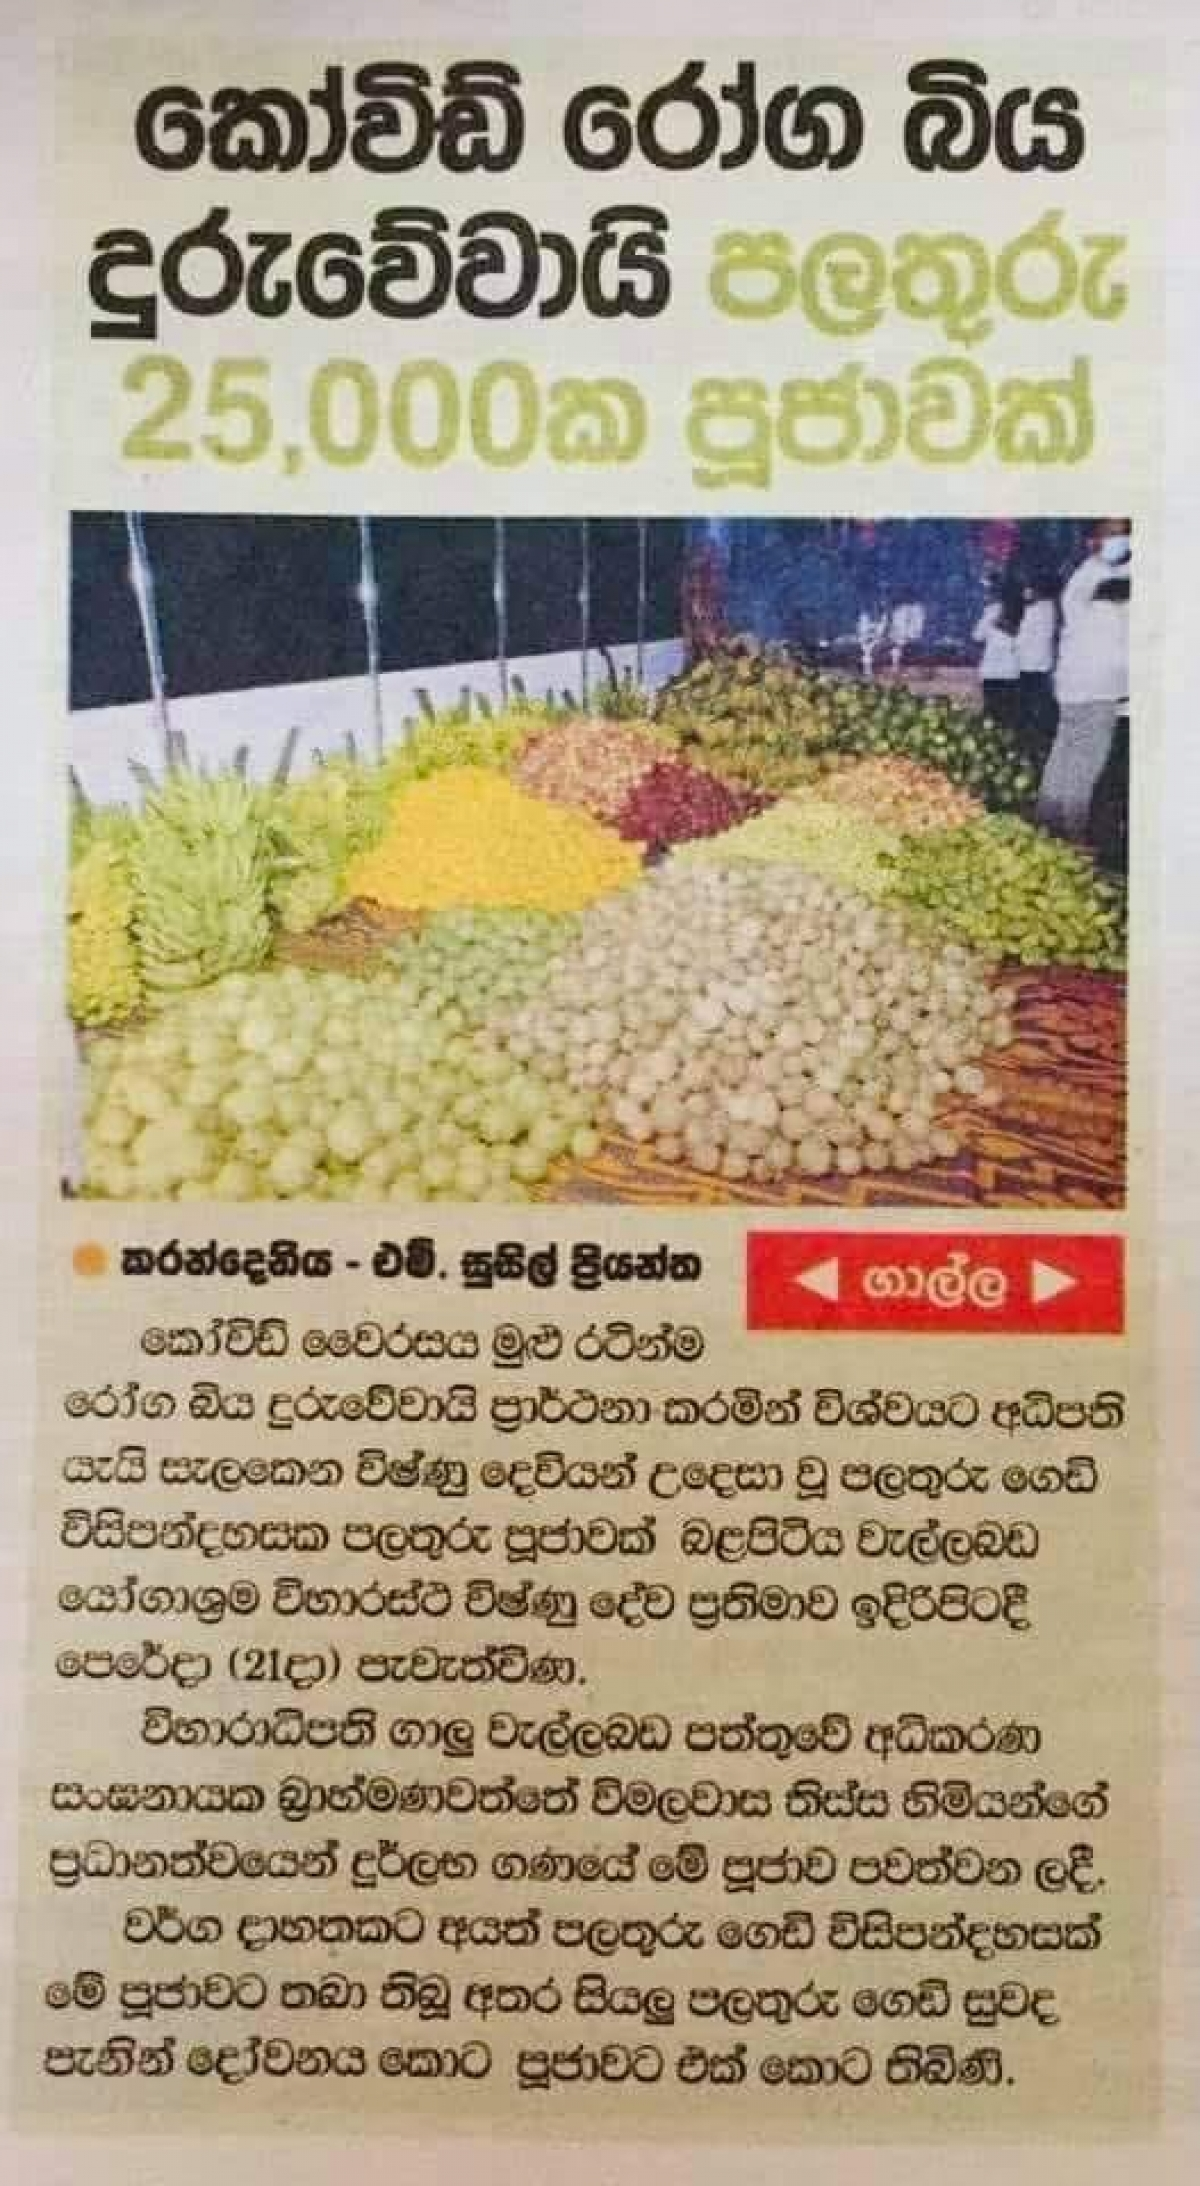 Massive Offering of 25,000 Fruits To Deities When Tens of Thousands In Colombo Suffering Without Food